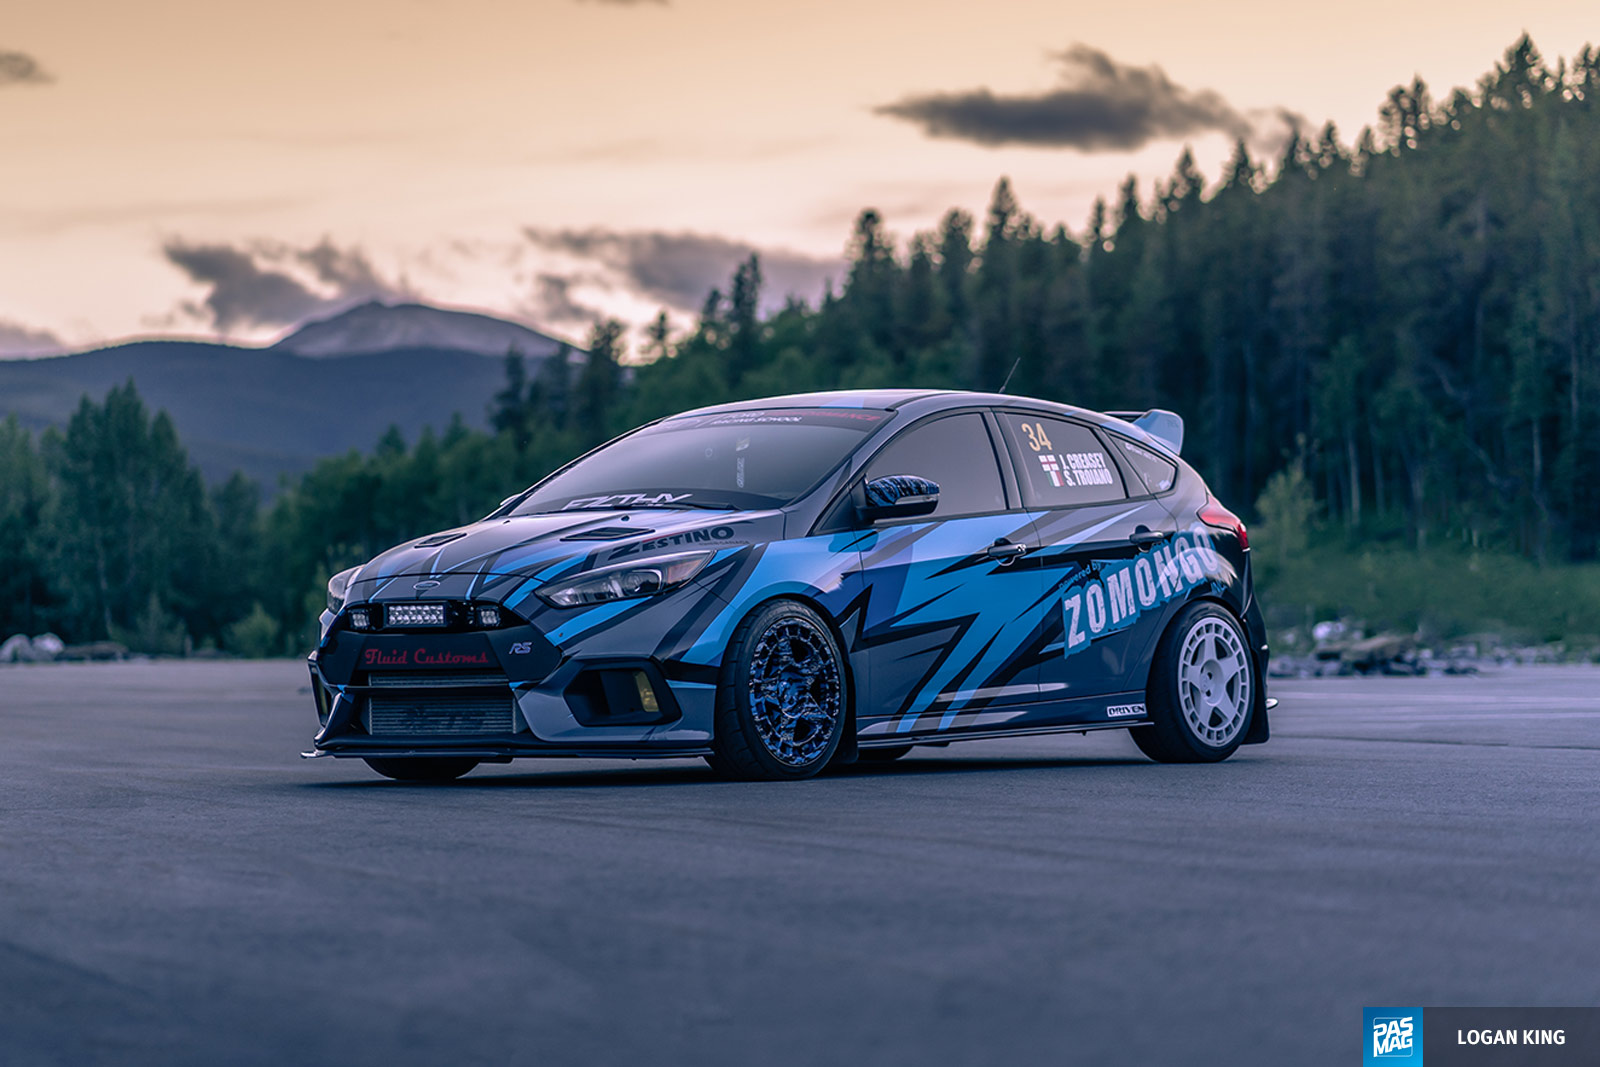 10 James Creasey 2017 Focus RS pasmag tuner battlegrounds driven champions